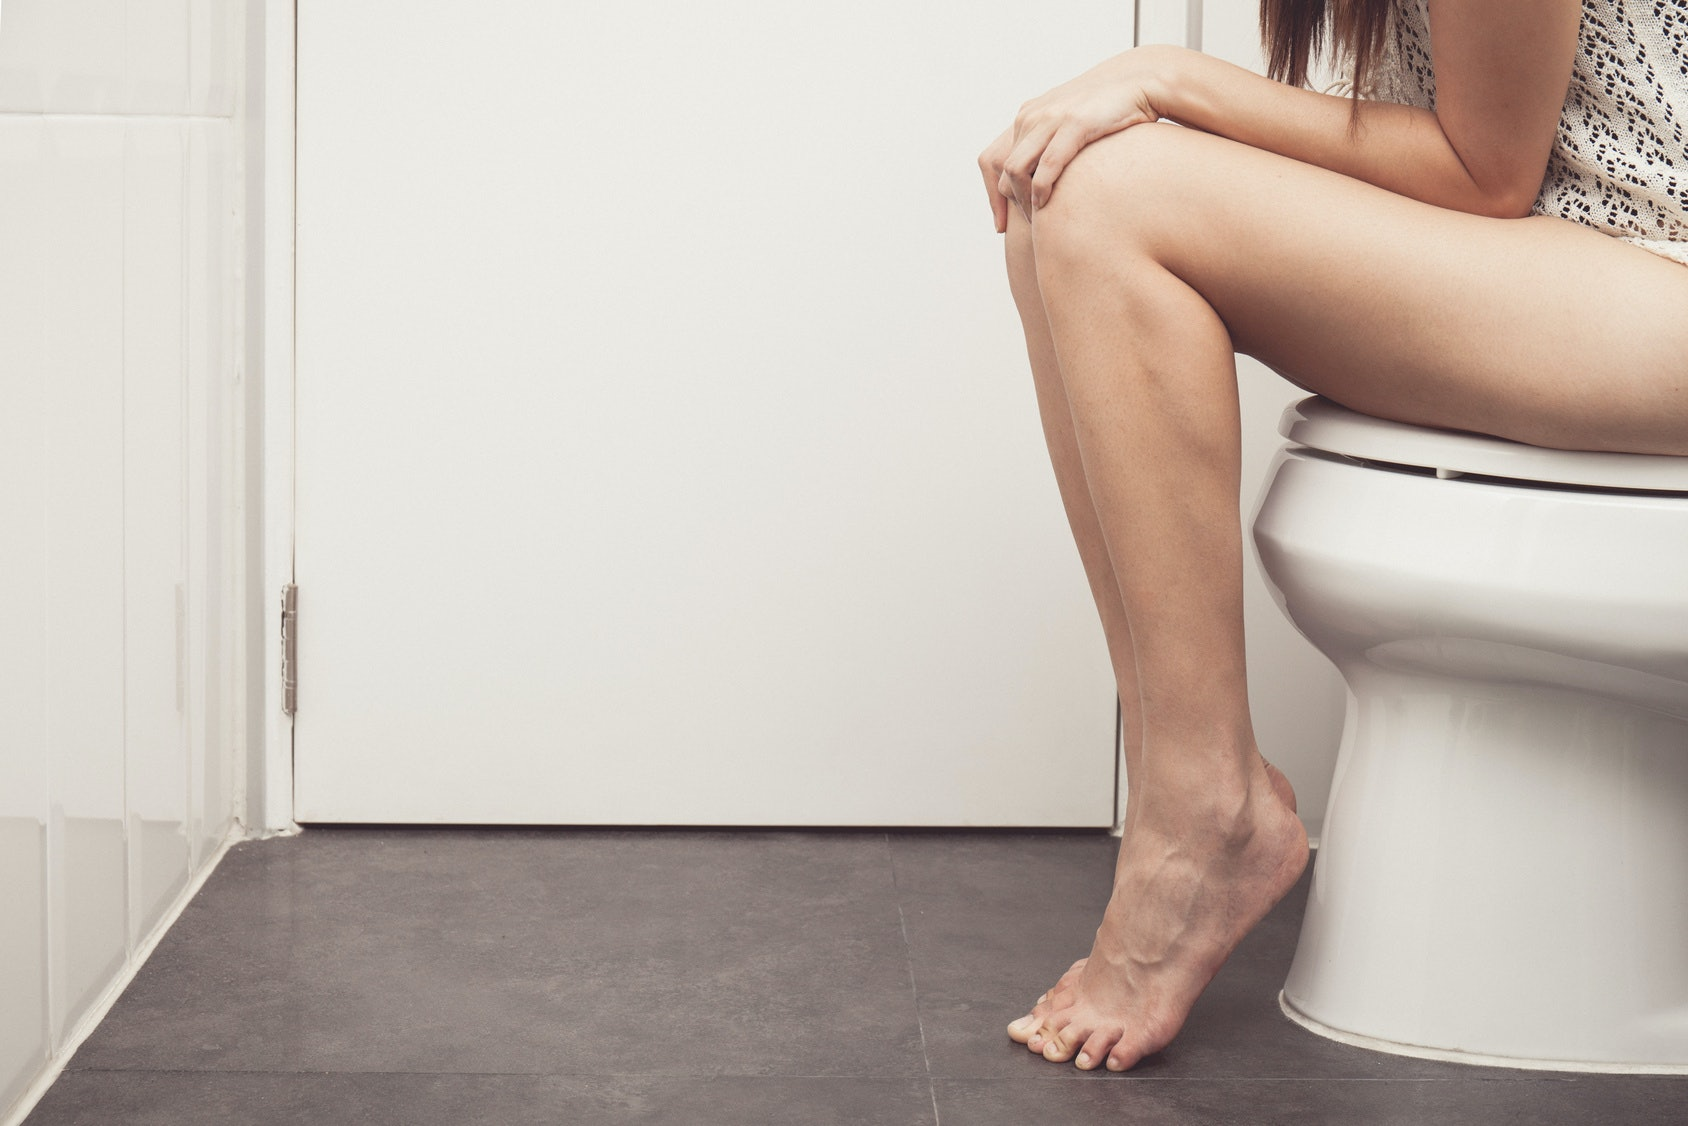 9 Reasons Why Pooping On Your Period Is The Worst, Because Periods